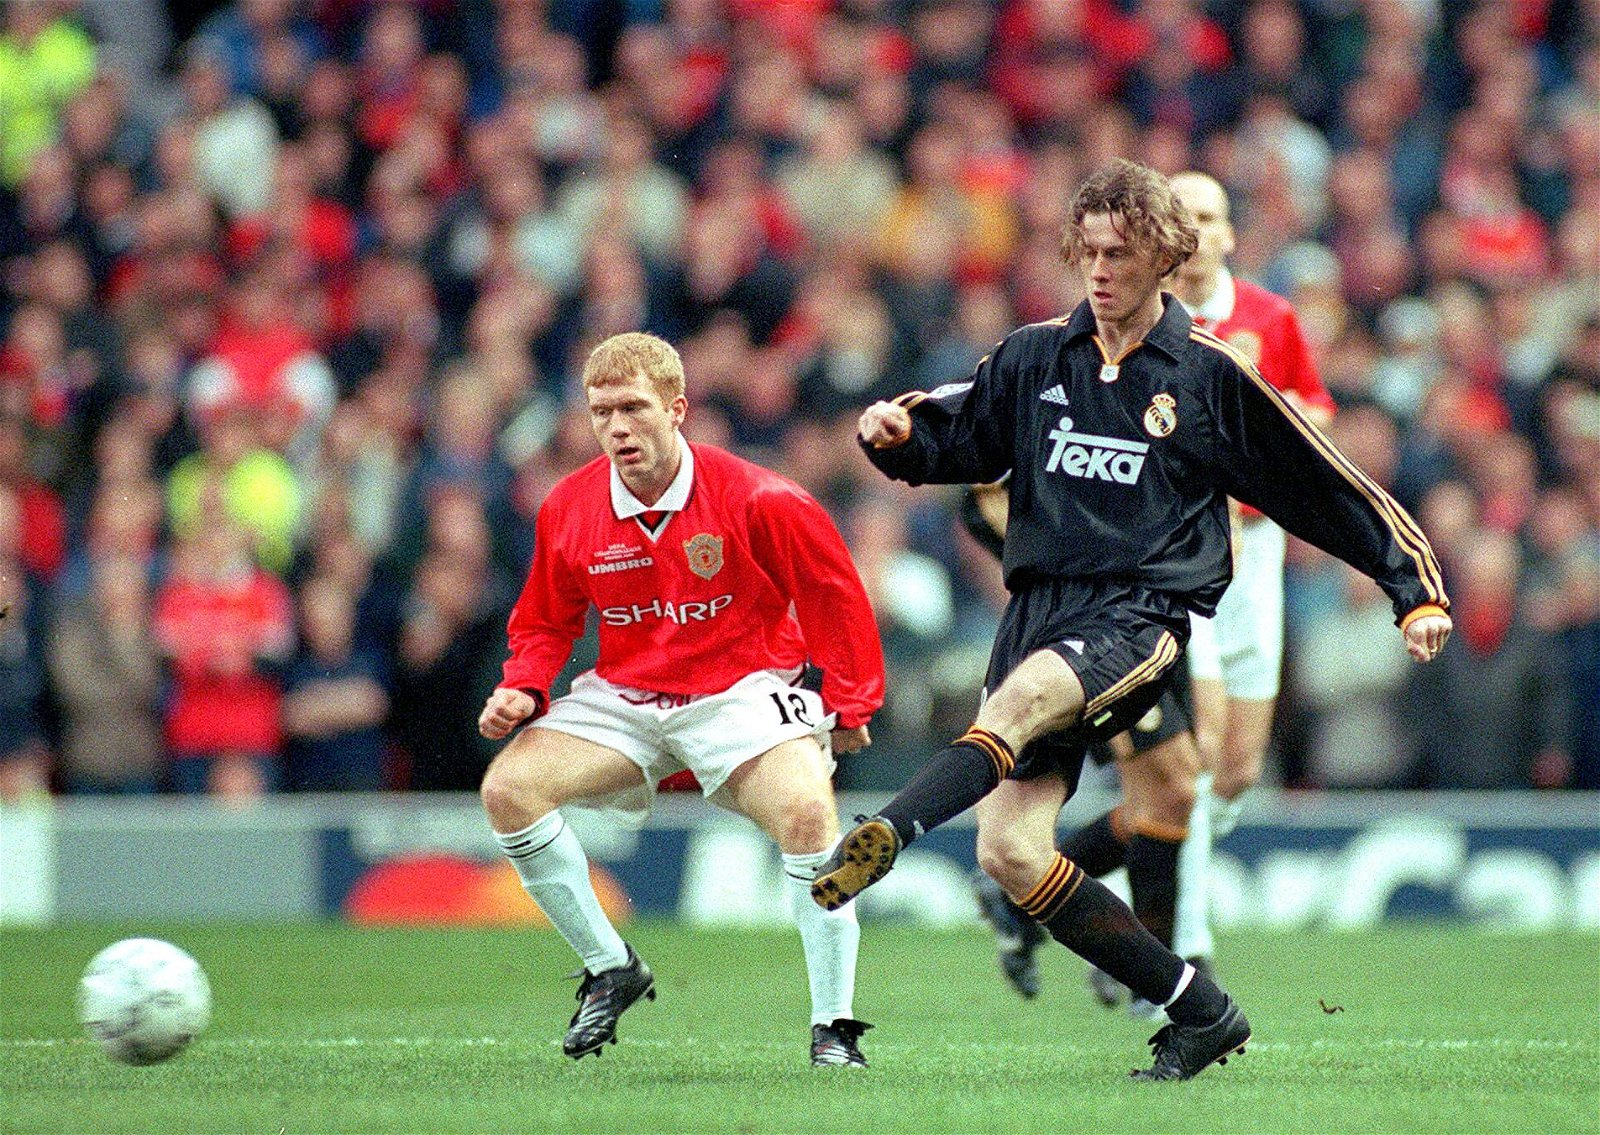 A slice of Premier League genius: Steve McManaman